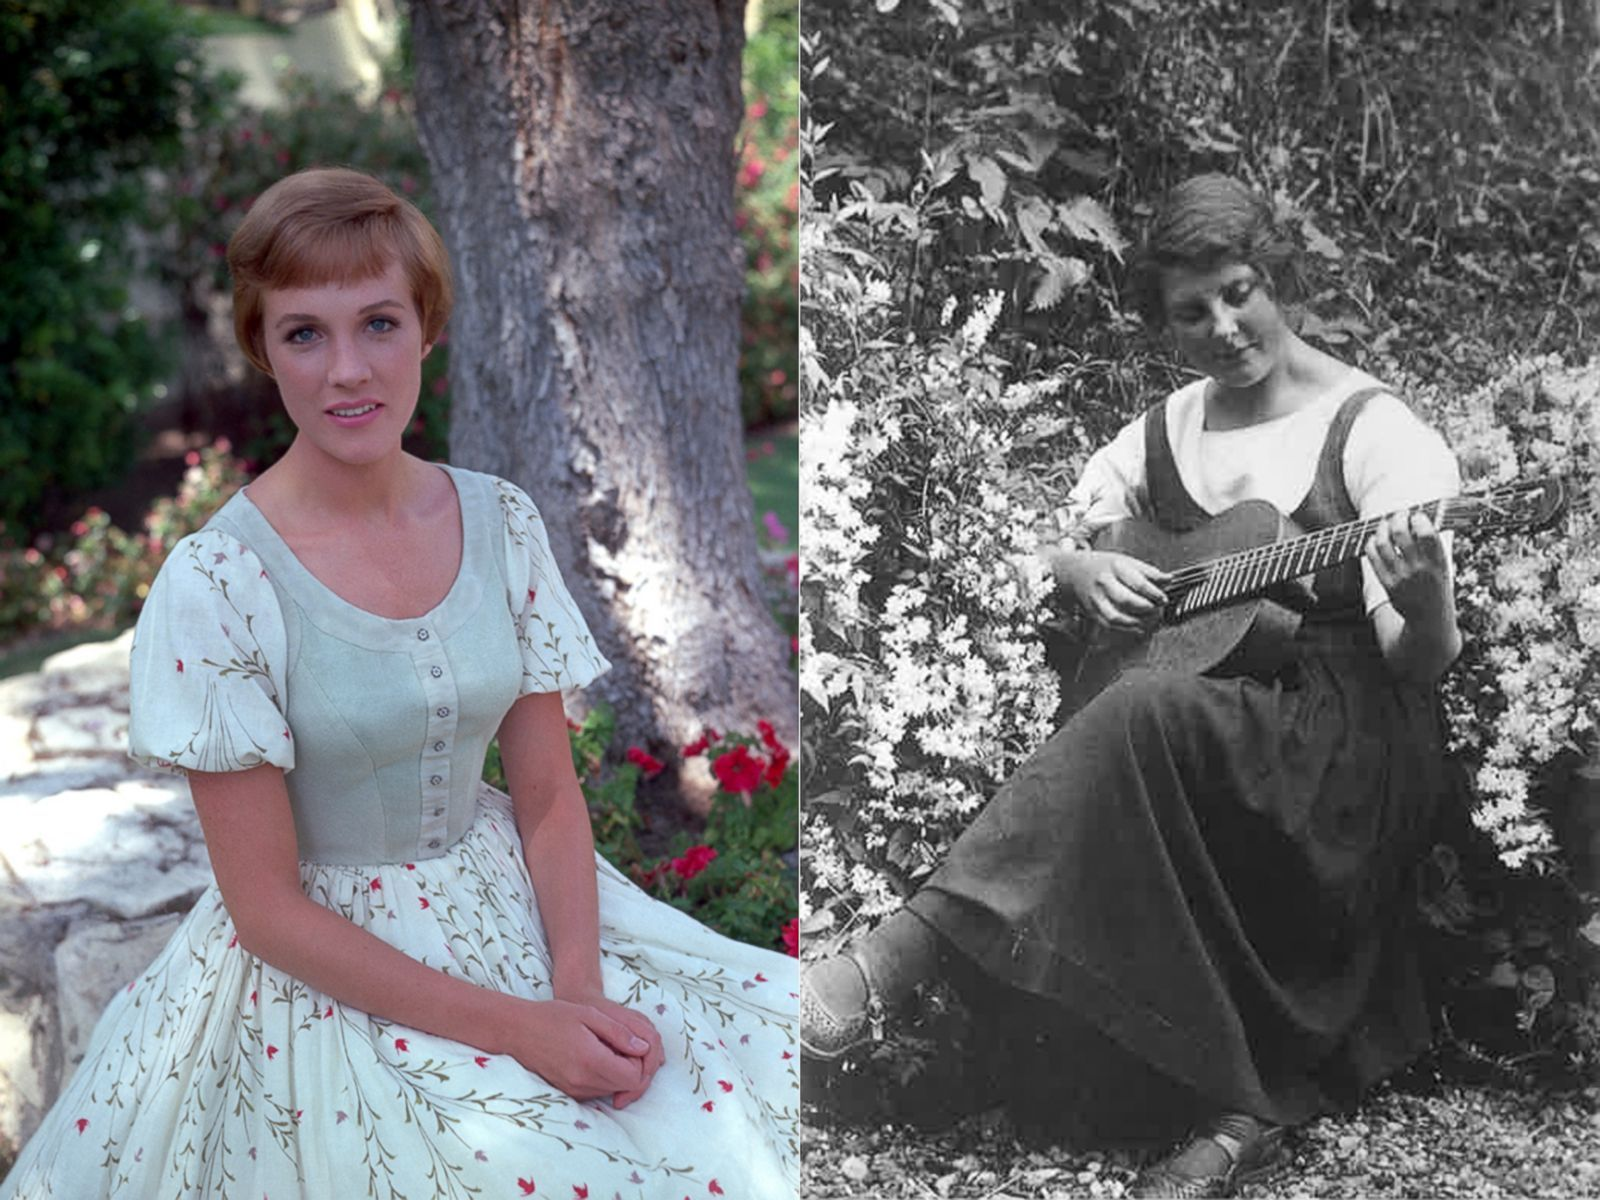 in the 1965 film quotthe sound of musicquot actress julie